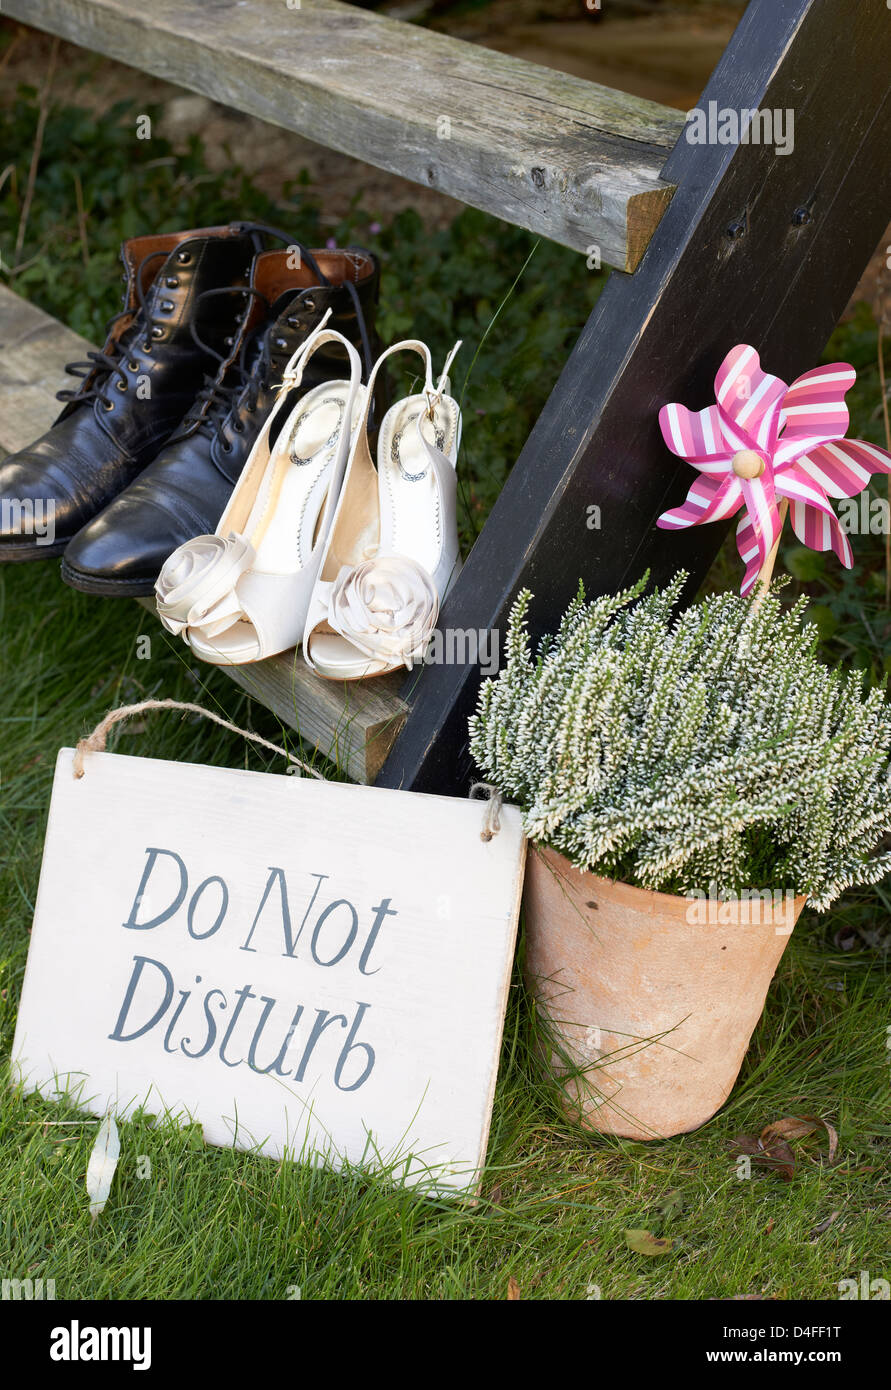 Newlywed couple's shoes with 'do not disturb' sign - Stock Image